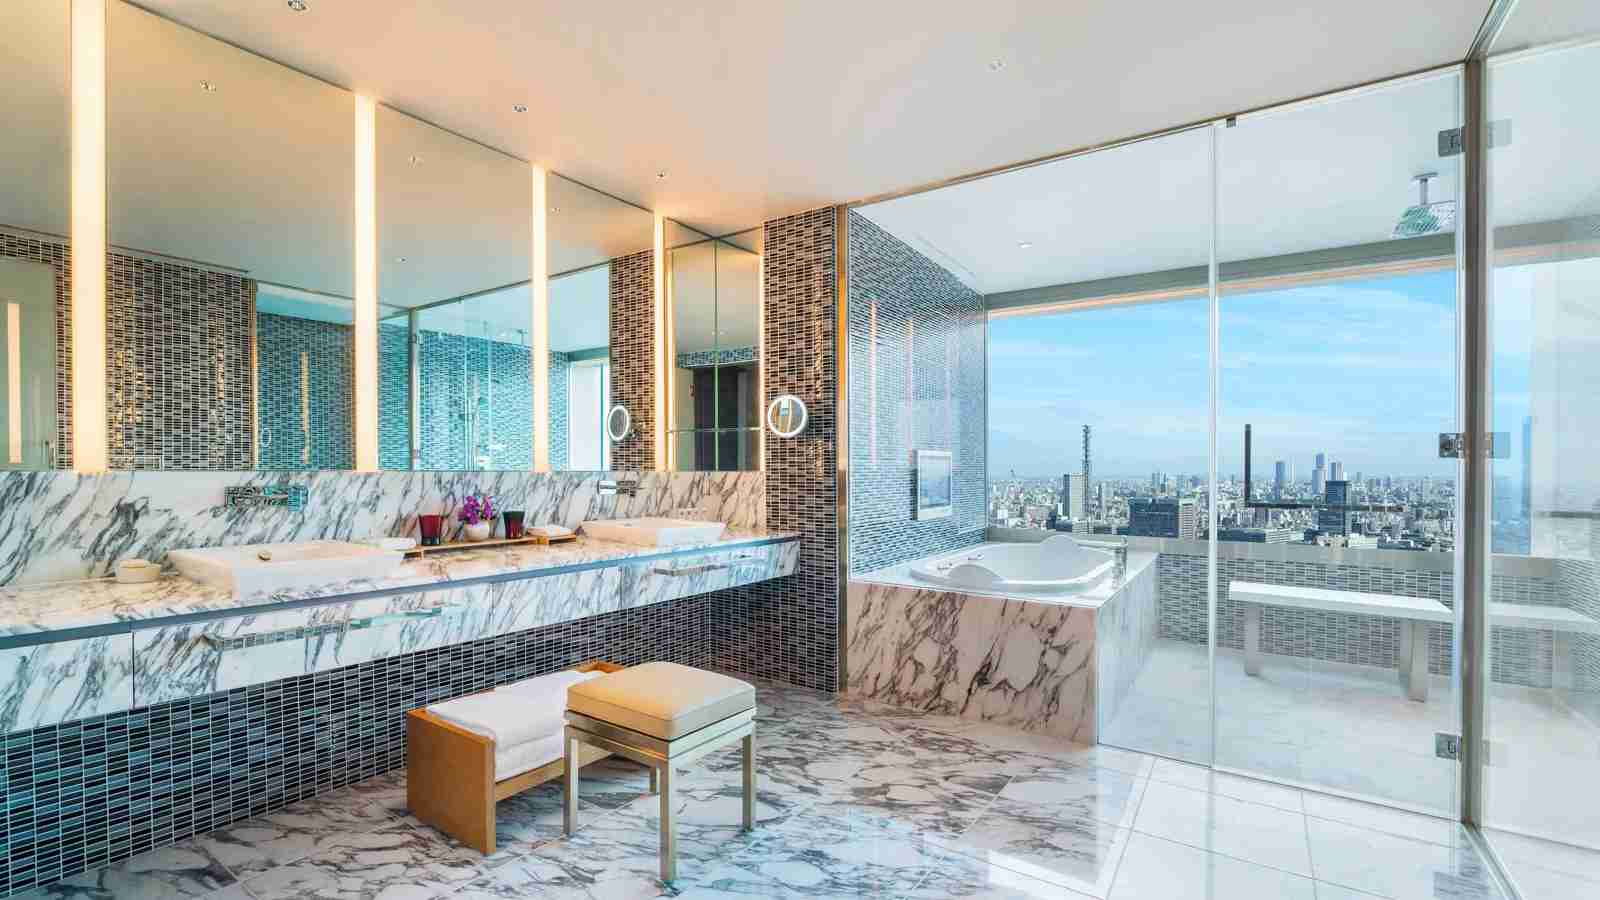 The Designers Suite Bathroom at The Prince Gallery Tokyo. (Photo courtesy of Marriott)